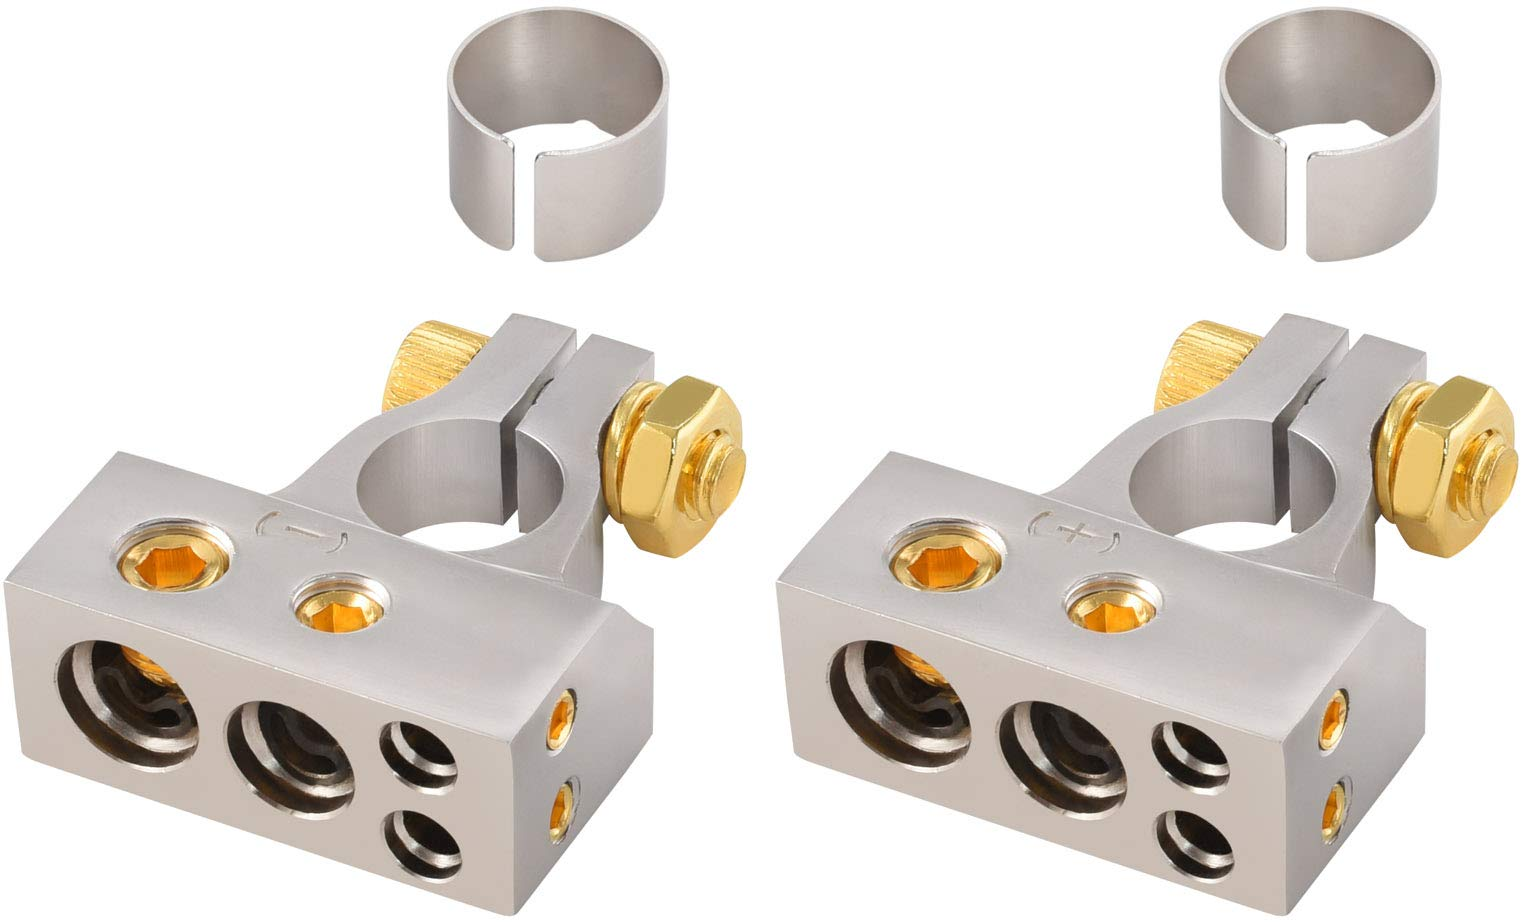 InstallGear 2/4/8/10 Gauge AWG Positive & Negative Battery Terminal Clamp and Shims (Pair) by InstallGear